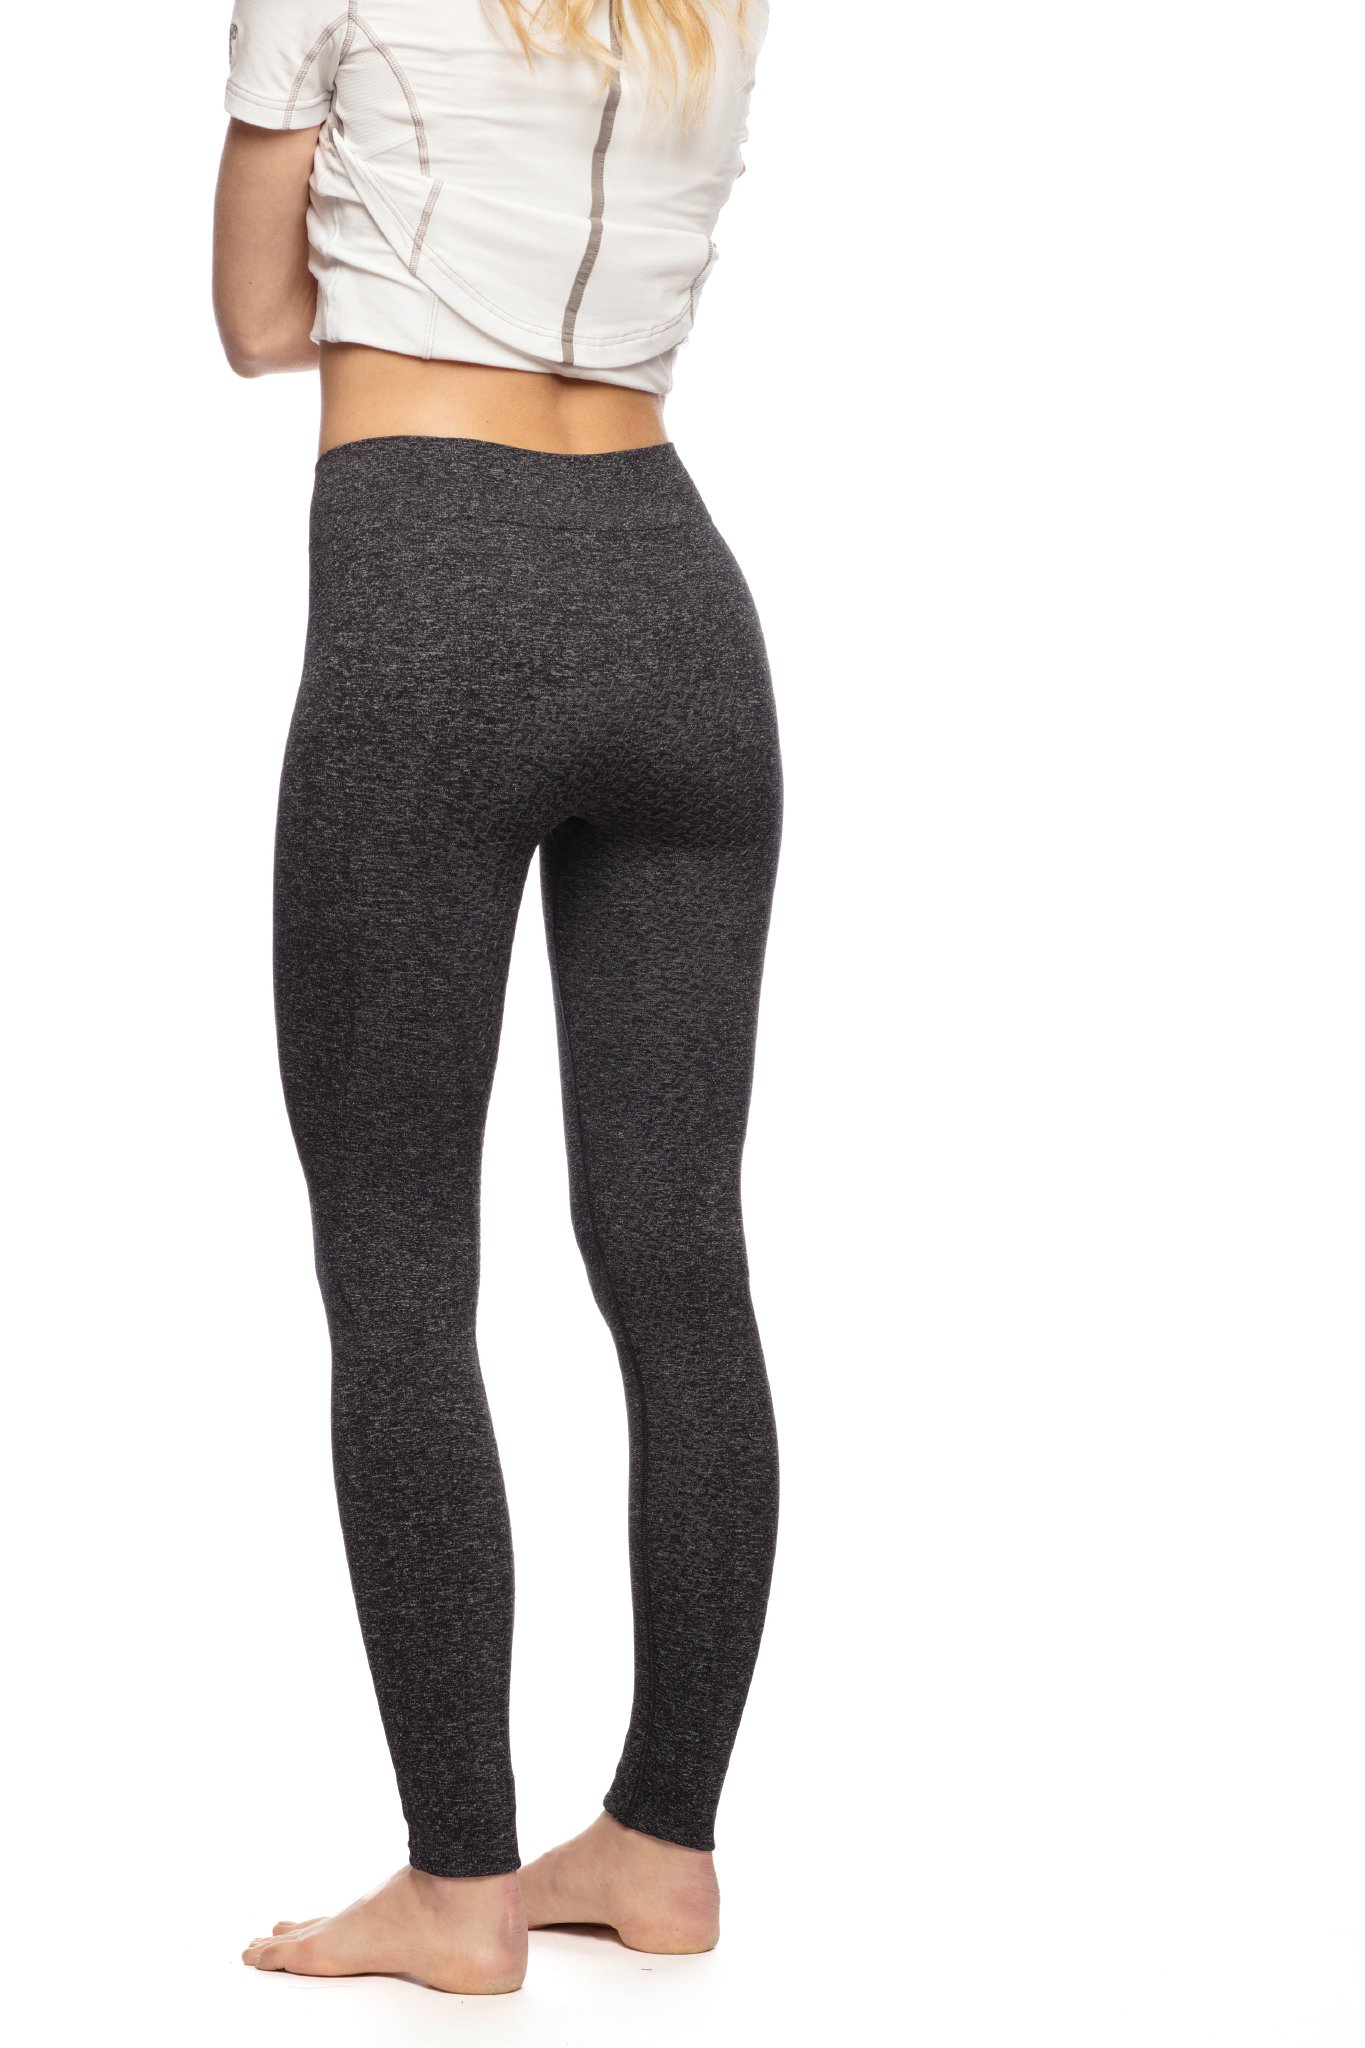 Goode Rider Bodyscuplting Seamless Tights Full Seat